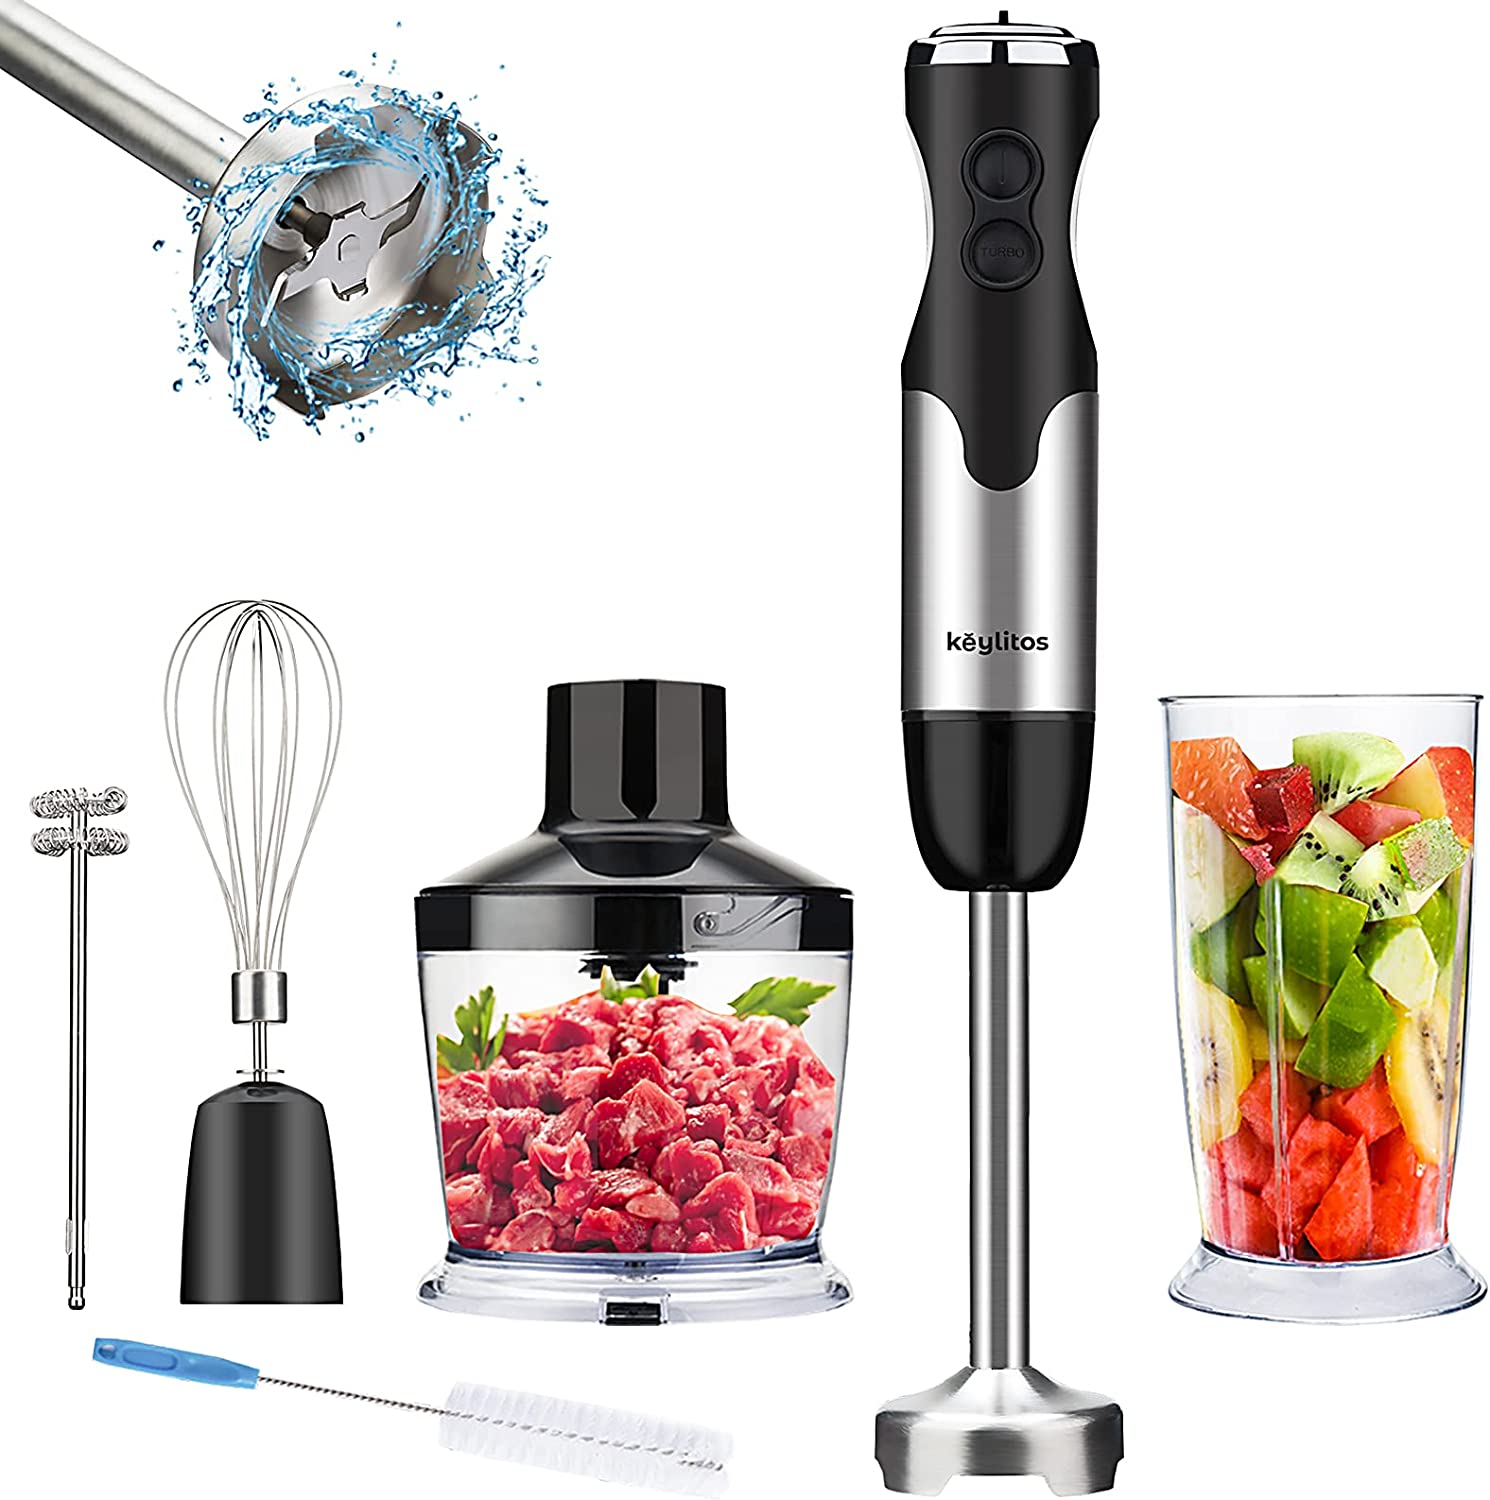 5-in-1 Immersion Hand Blender, Powerful 800W 12-Speed Handheld Stick Blender with Stainless Steel Blades, with Chopper, Beaker, Whisk and Milk Frother for Smoothie, Baby Food, Sauces Red,Puree, Soup